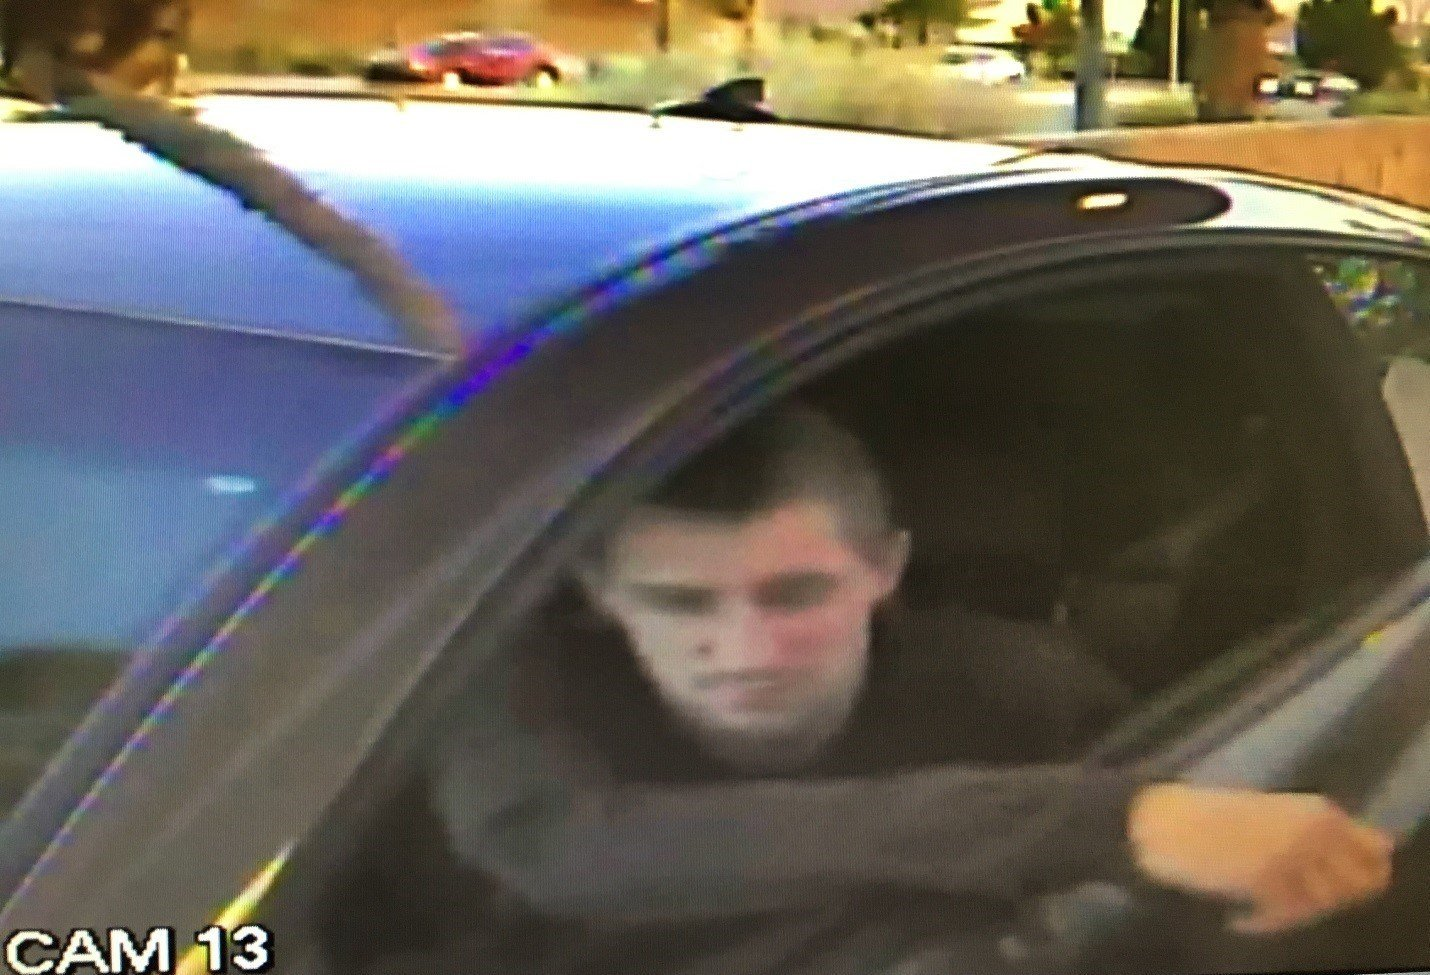 Metro police released this photo of the robbery suspect. (LVMPD/FOX5)